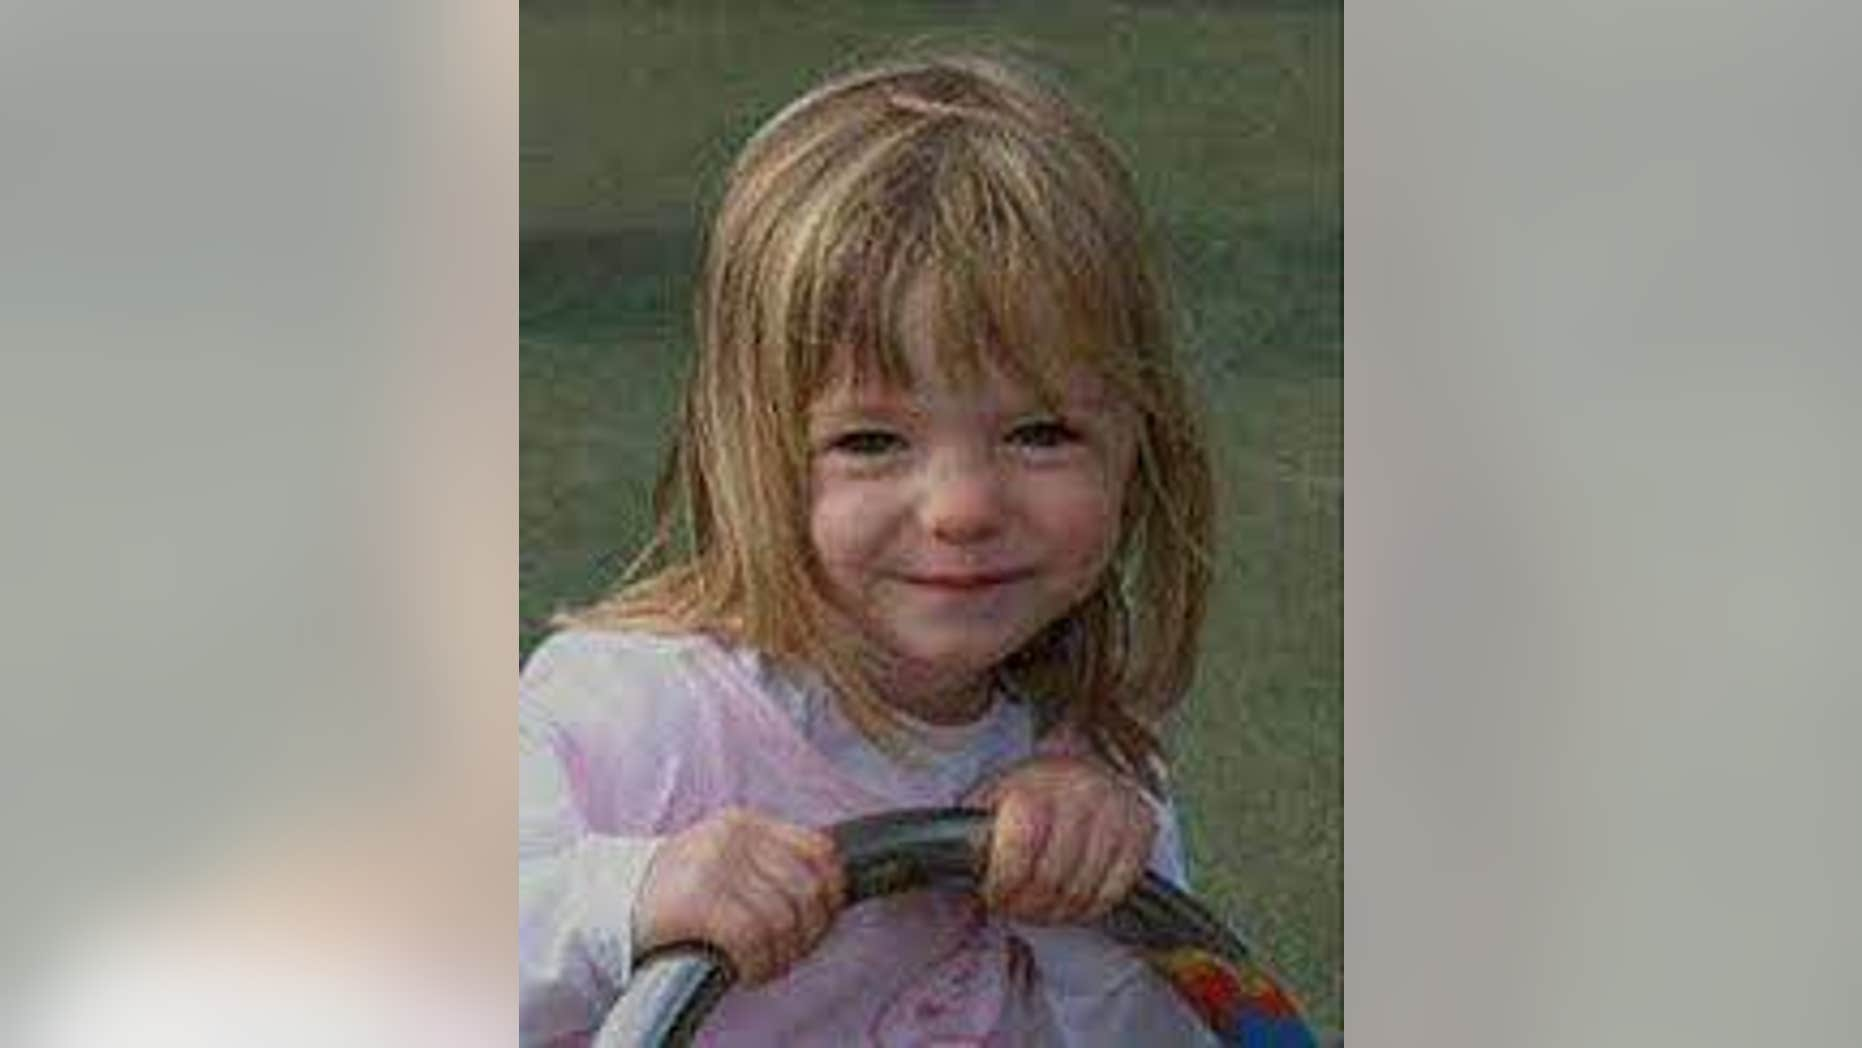 Madeleine McCann disappeared in 2007 just days before her 4th birthday while vacationing with her family in Portugal.